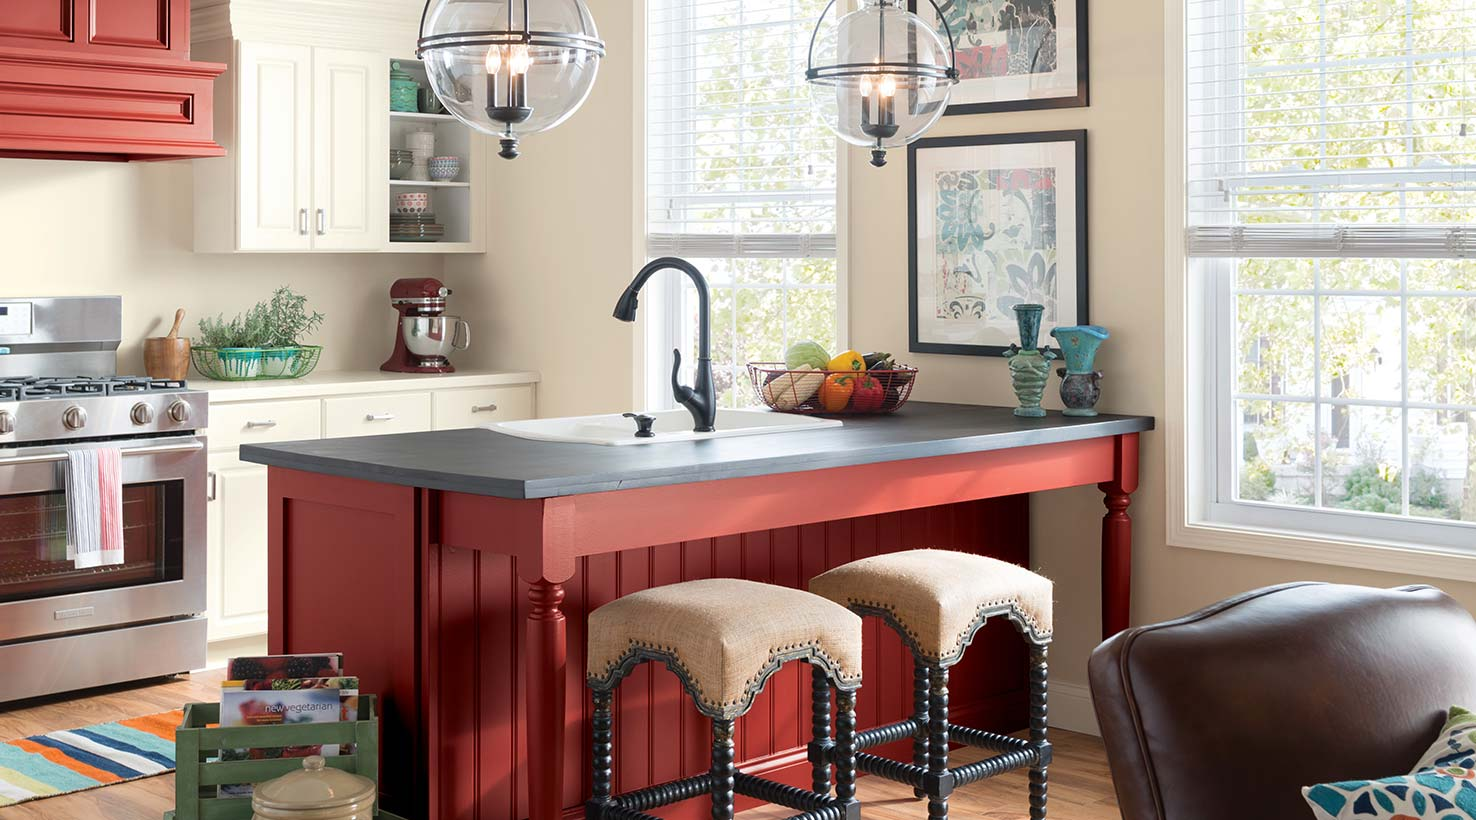 Perky Kitchen Reds Kitchen Paint Color Ideas Inspiration Gallery Sherwin Williams Balanced Beige Review Sherwin Williams Balanced Beige Bathroom houzz-03 Sherwin Williams Balanced Beige